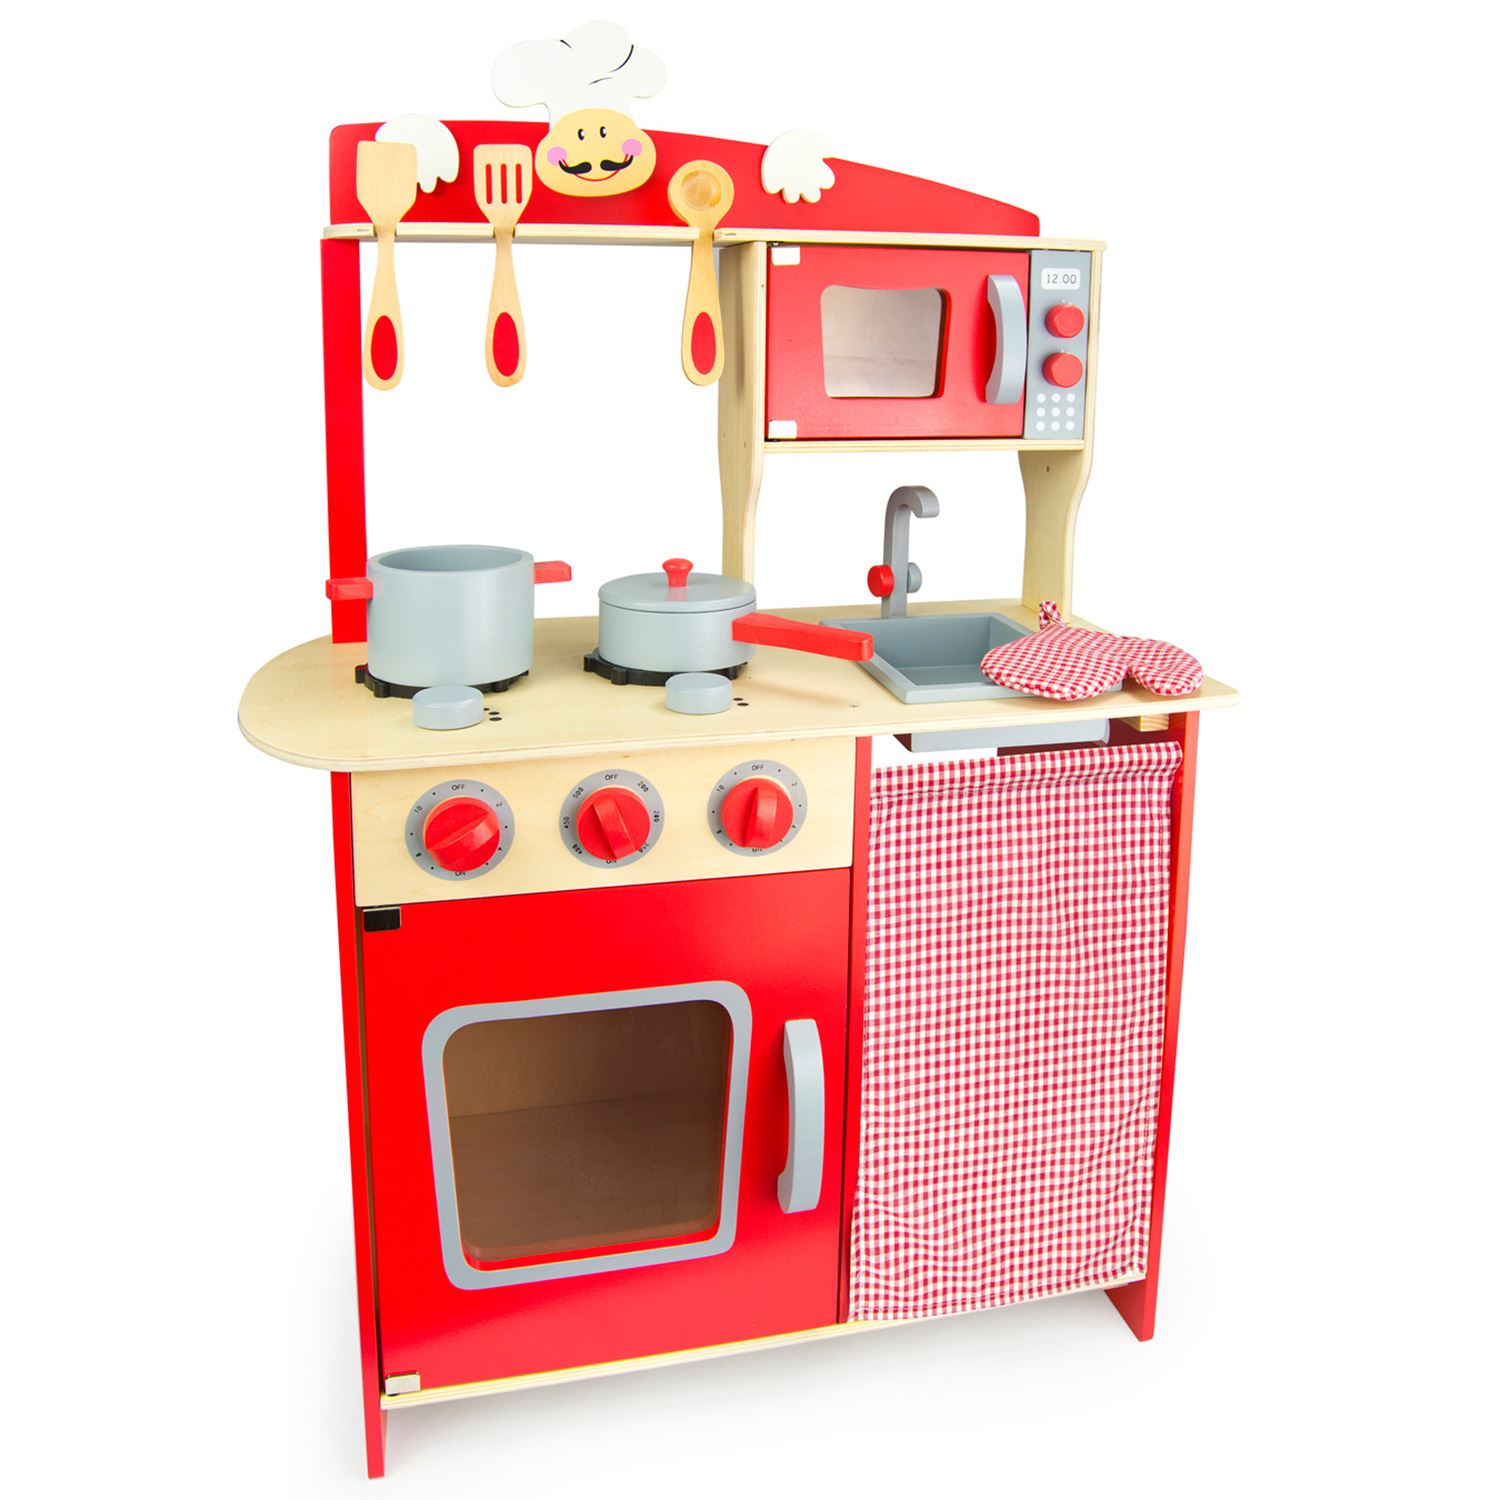 role play kitchen accessories wooden chef kitchen with accessories by leomark 4855